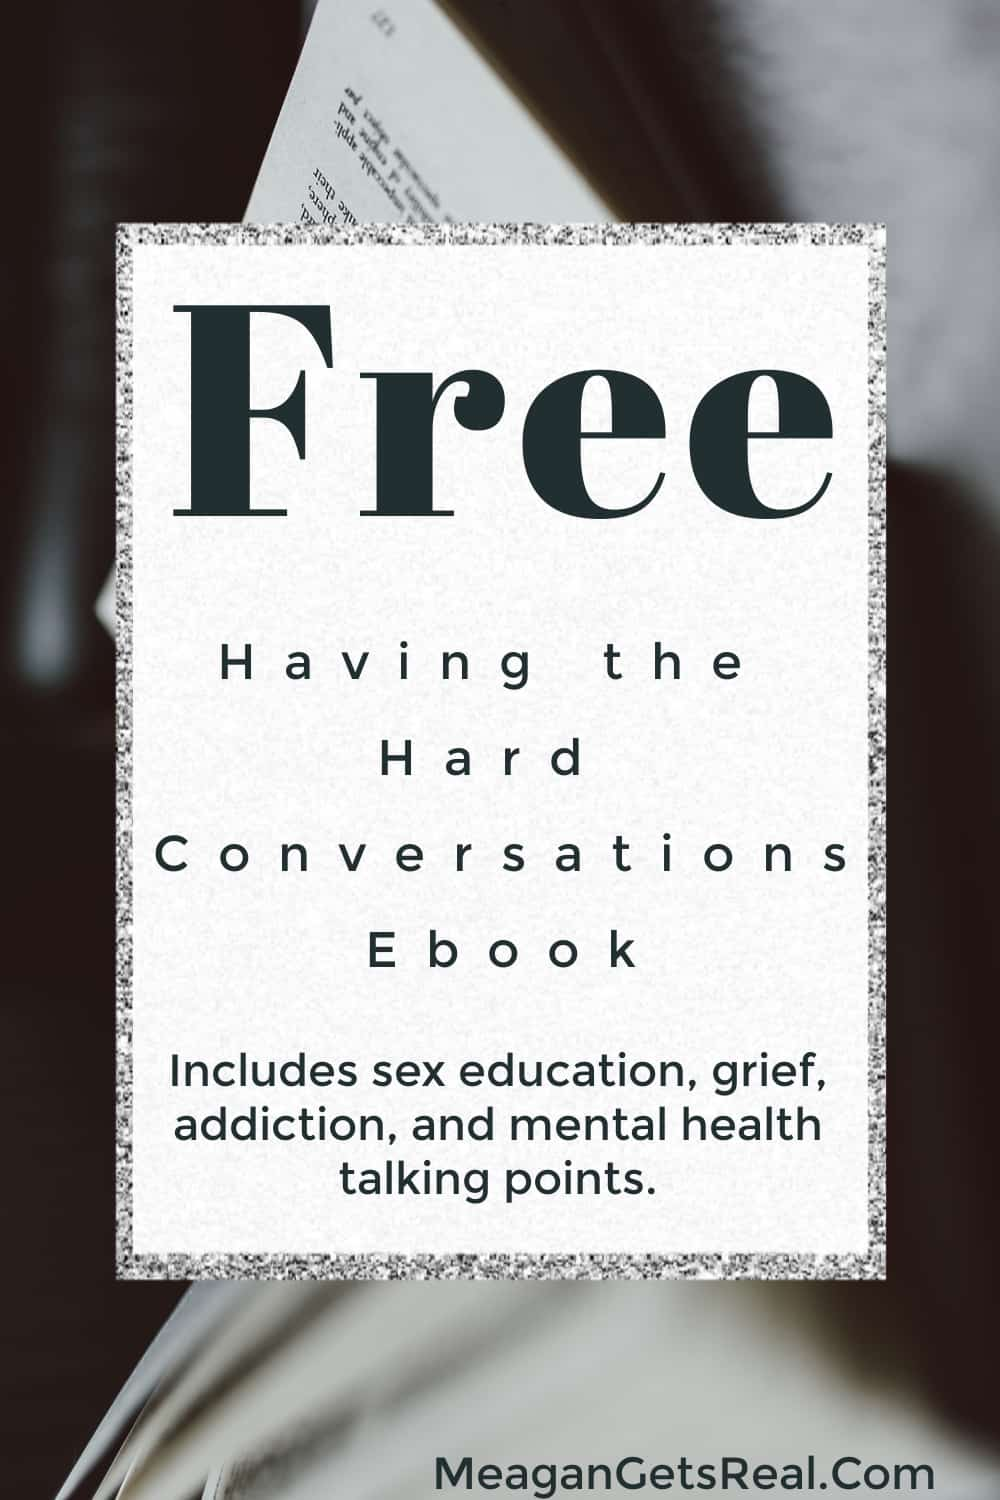 Having the Hard Conversations Free Ebook